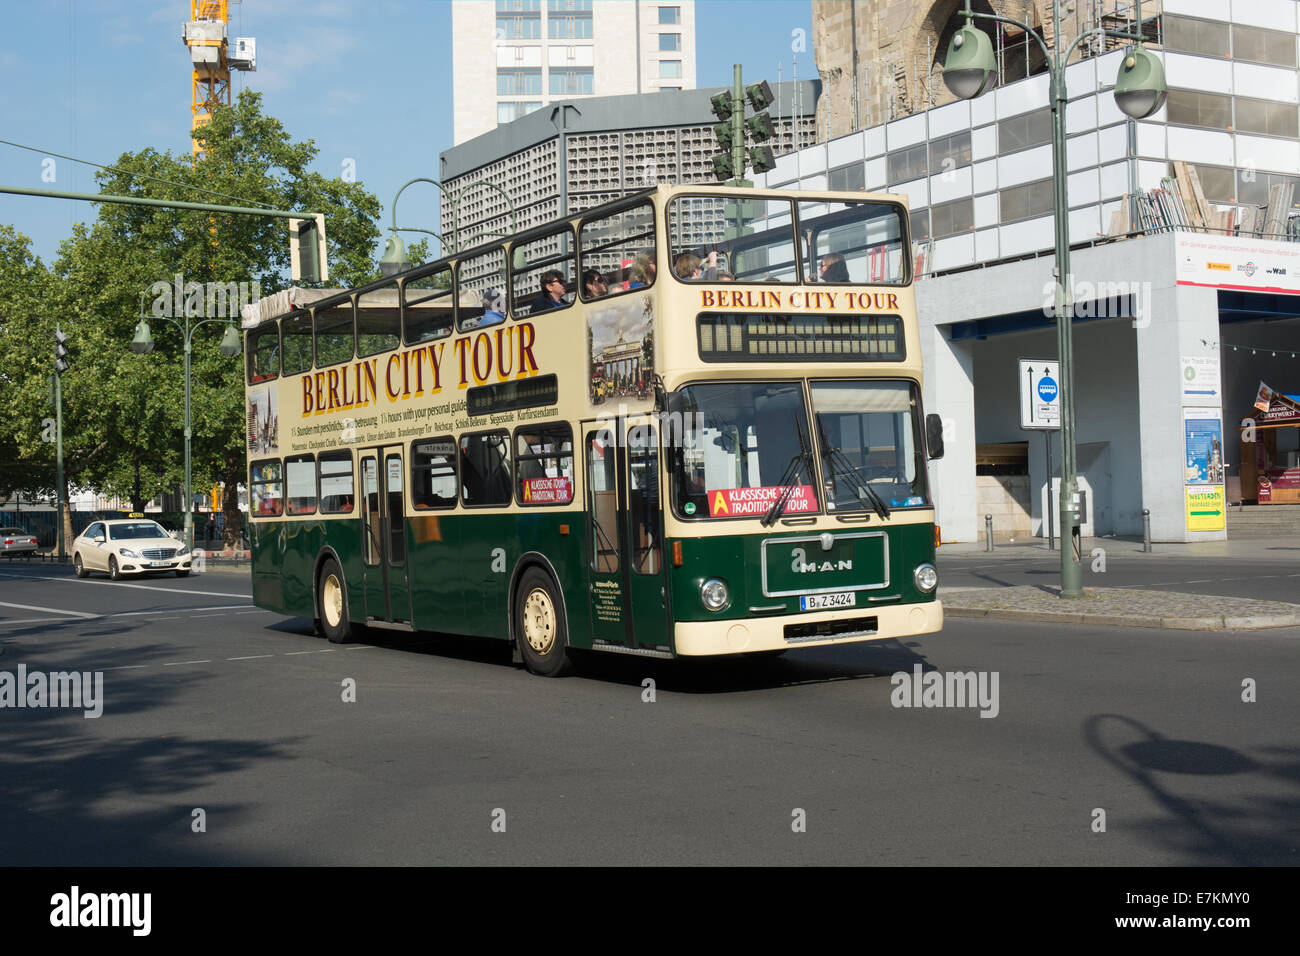 A sightseeing bus travels along Kurfürstendamm, Berlin - Stock Image